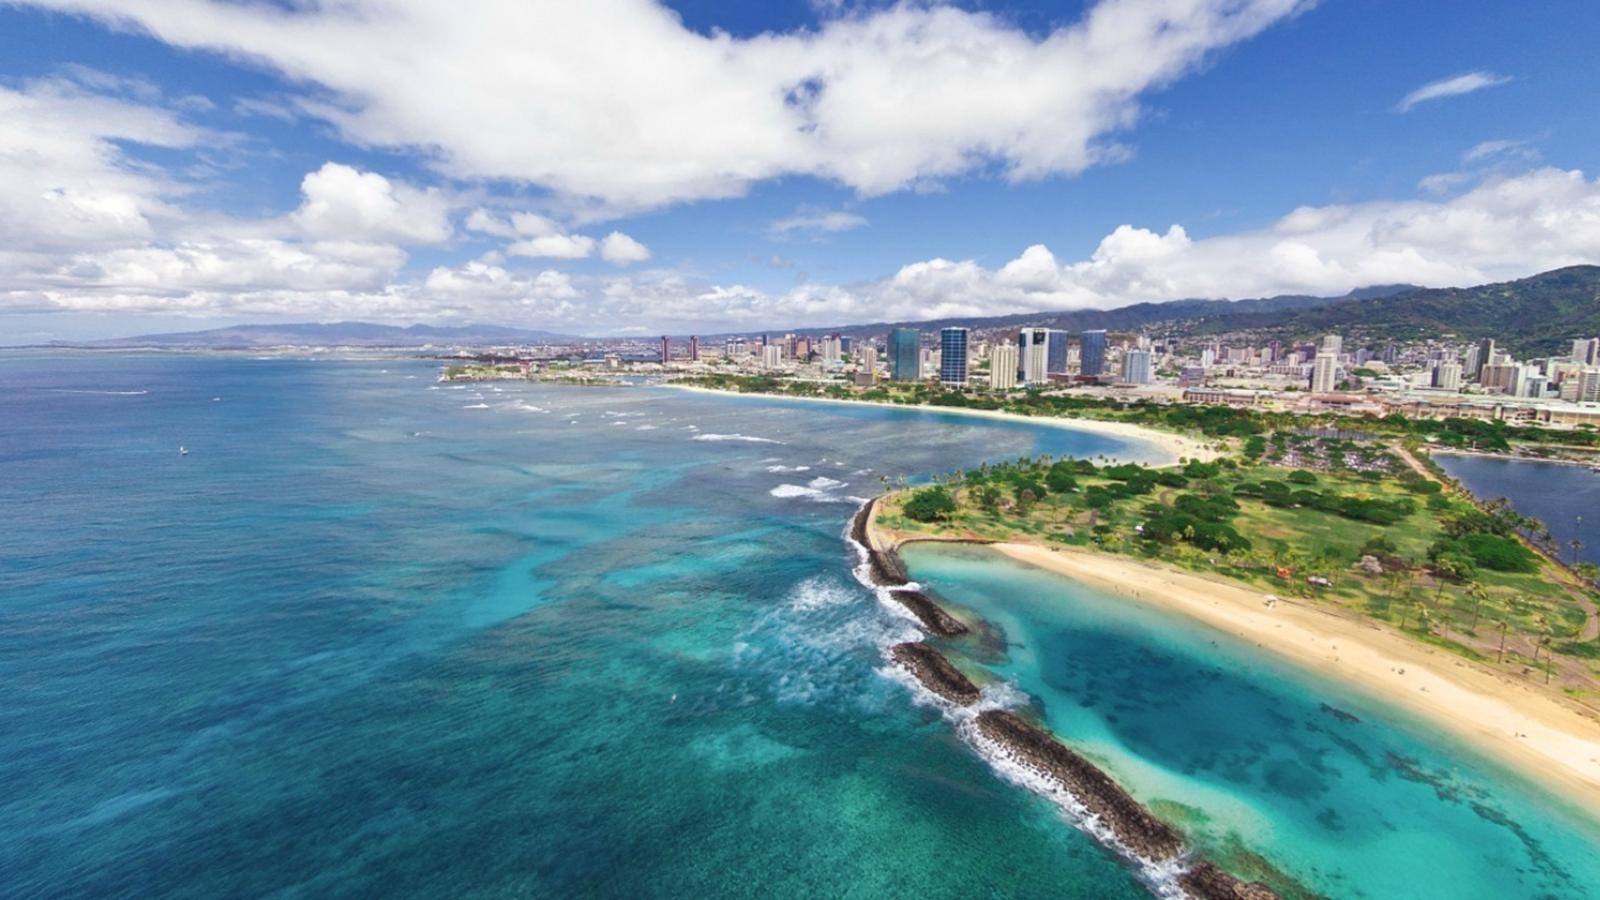 clouds landscapes cityscapes hawaii oahu beach wallpaper 59643 1600x900